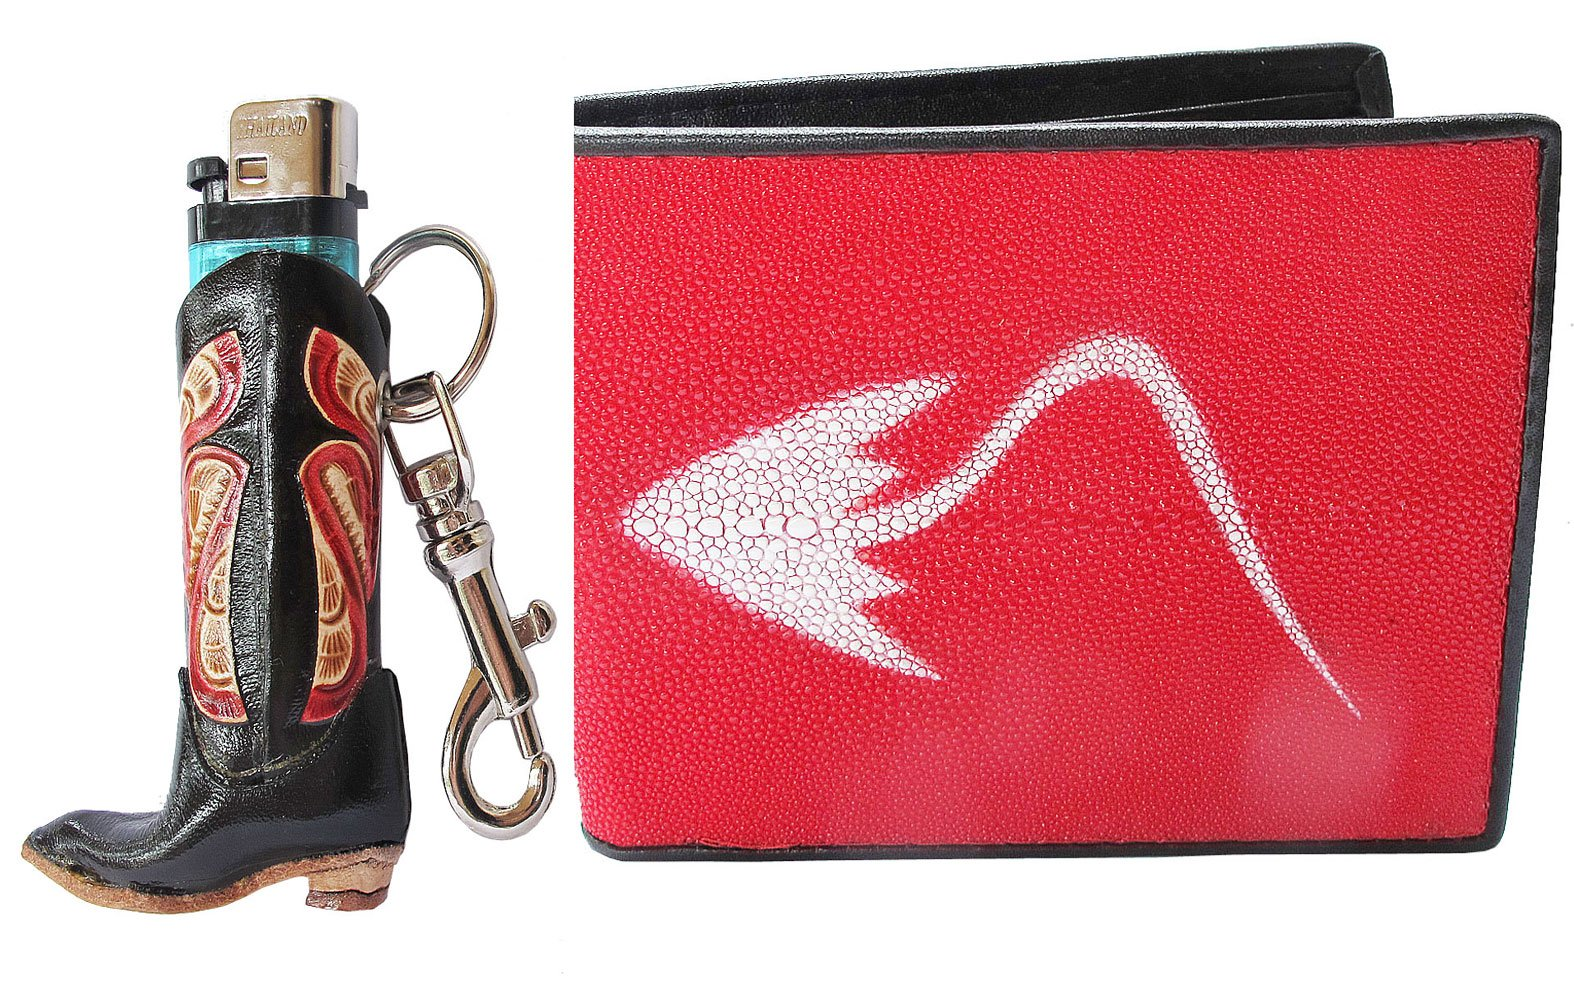 Danai Presents.(WHOLESALE FOR 3 SET) HOT RED GENEUINE AND COOL STINGRAY BI FOLD WALLET US SIZE COME ALONG WITH LIGHTER CASE by THAI